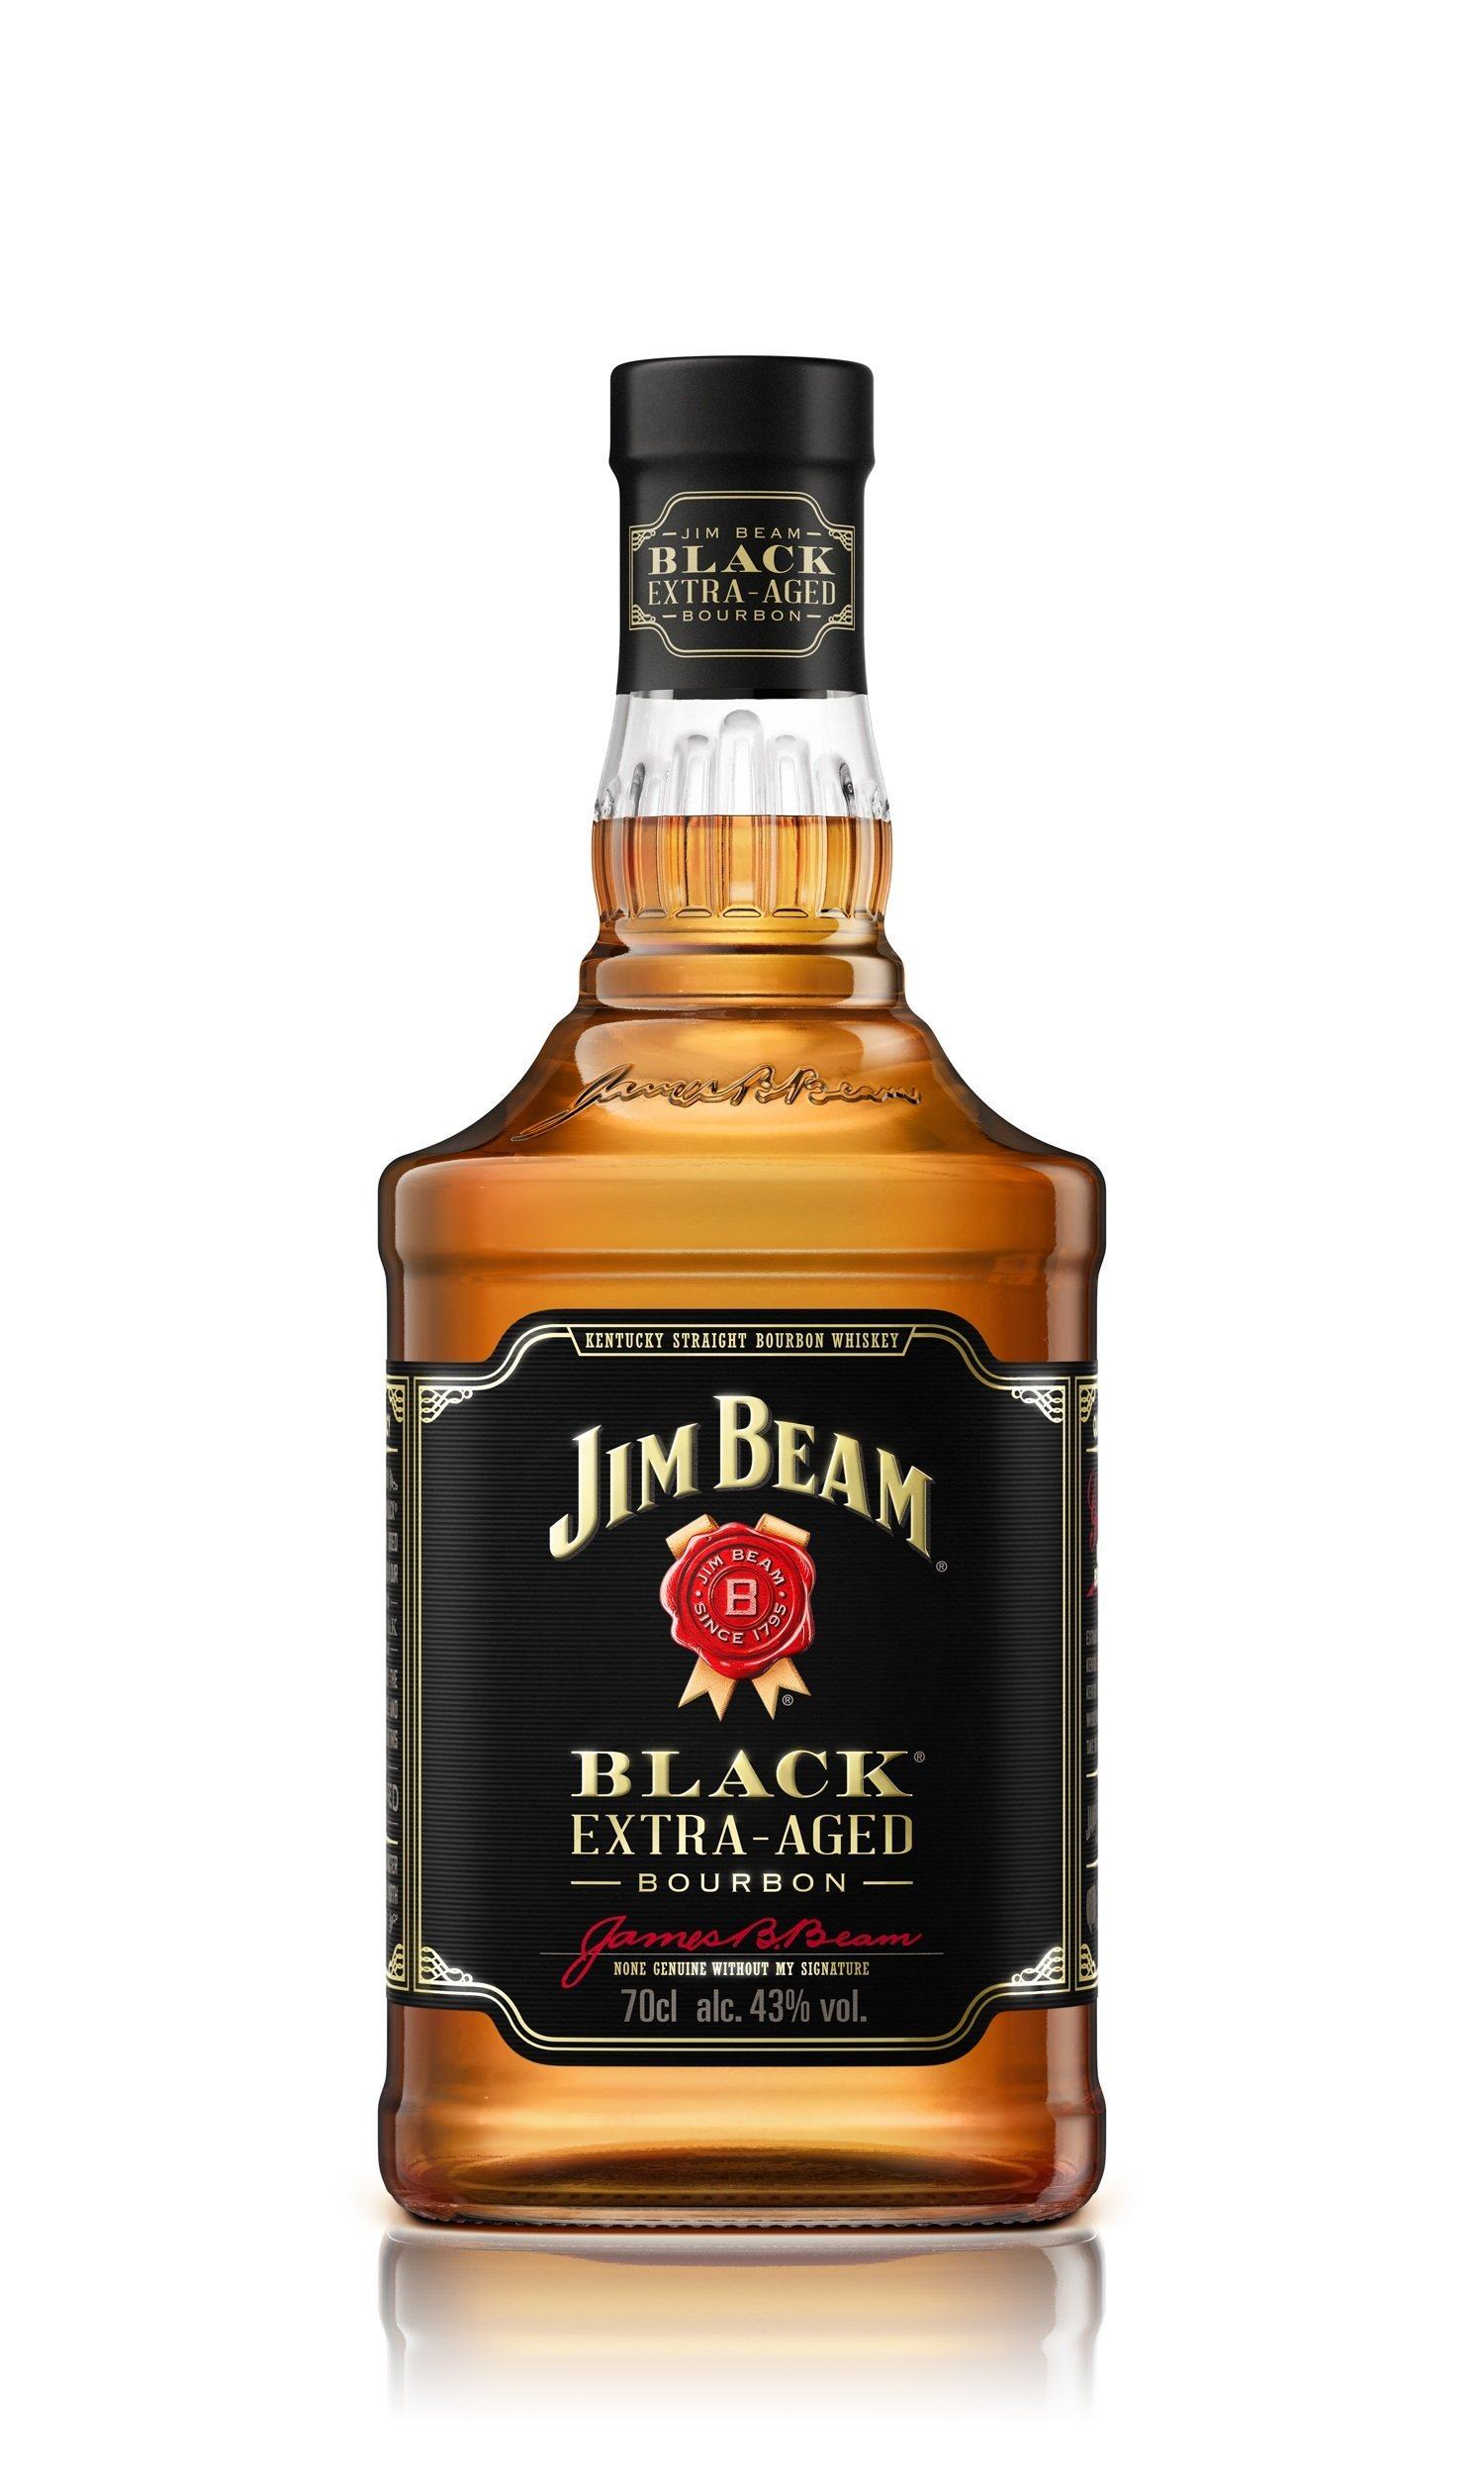 Jim Beam Black Label, 70 cl